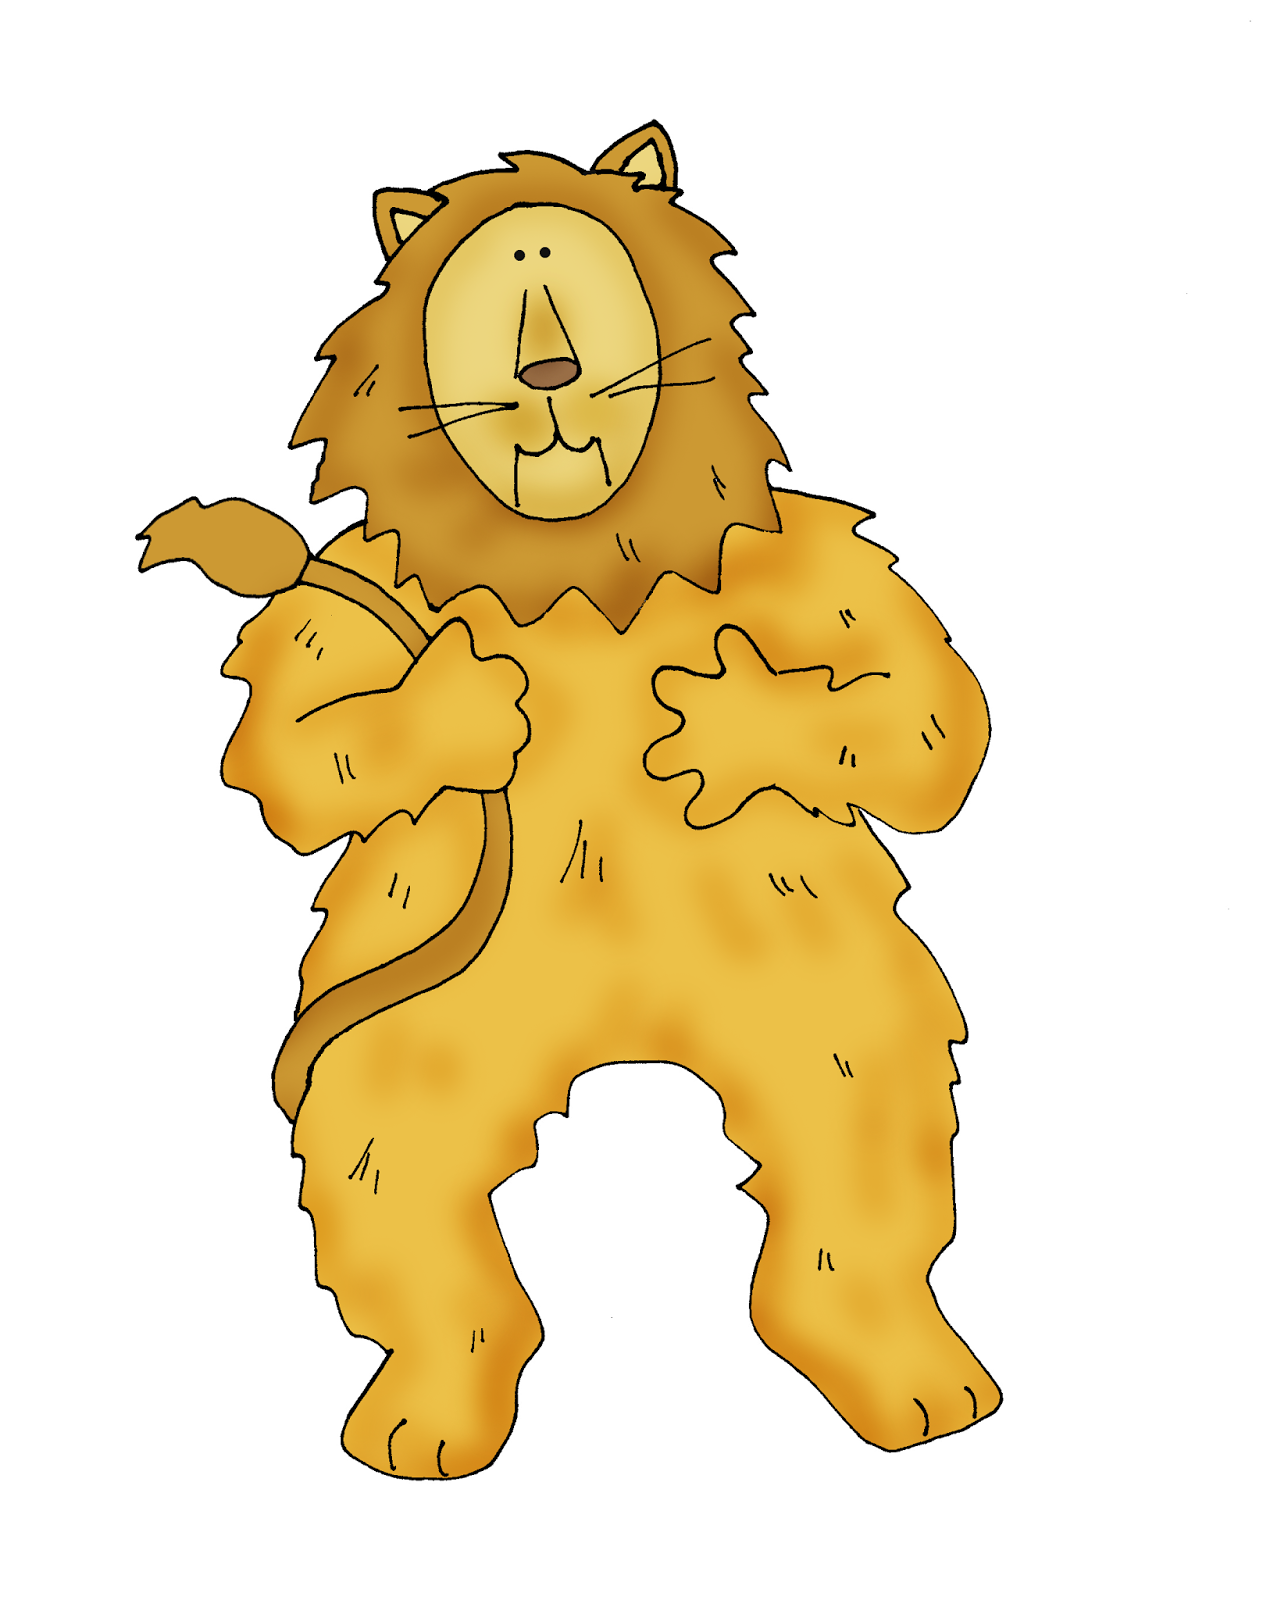 Gallery Cowardly Lion Free Dearie Dolls Digi Stamps   Digi stamps ... is free HD wallpaper.